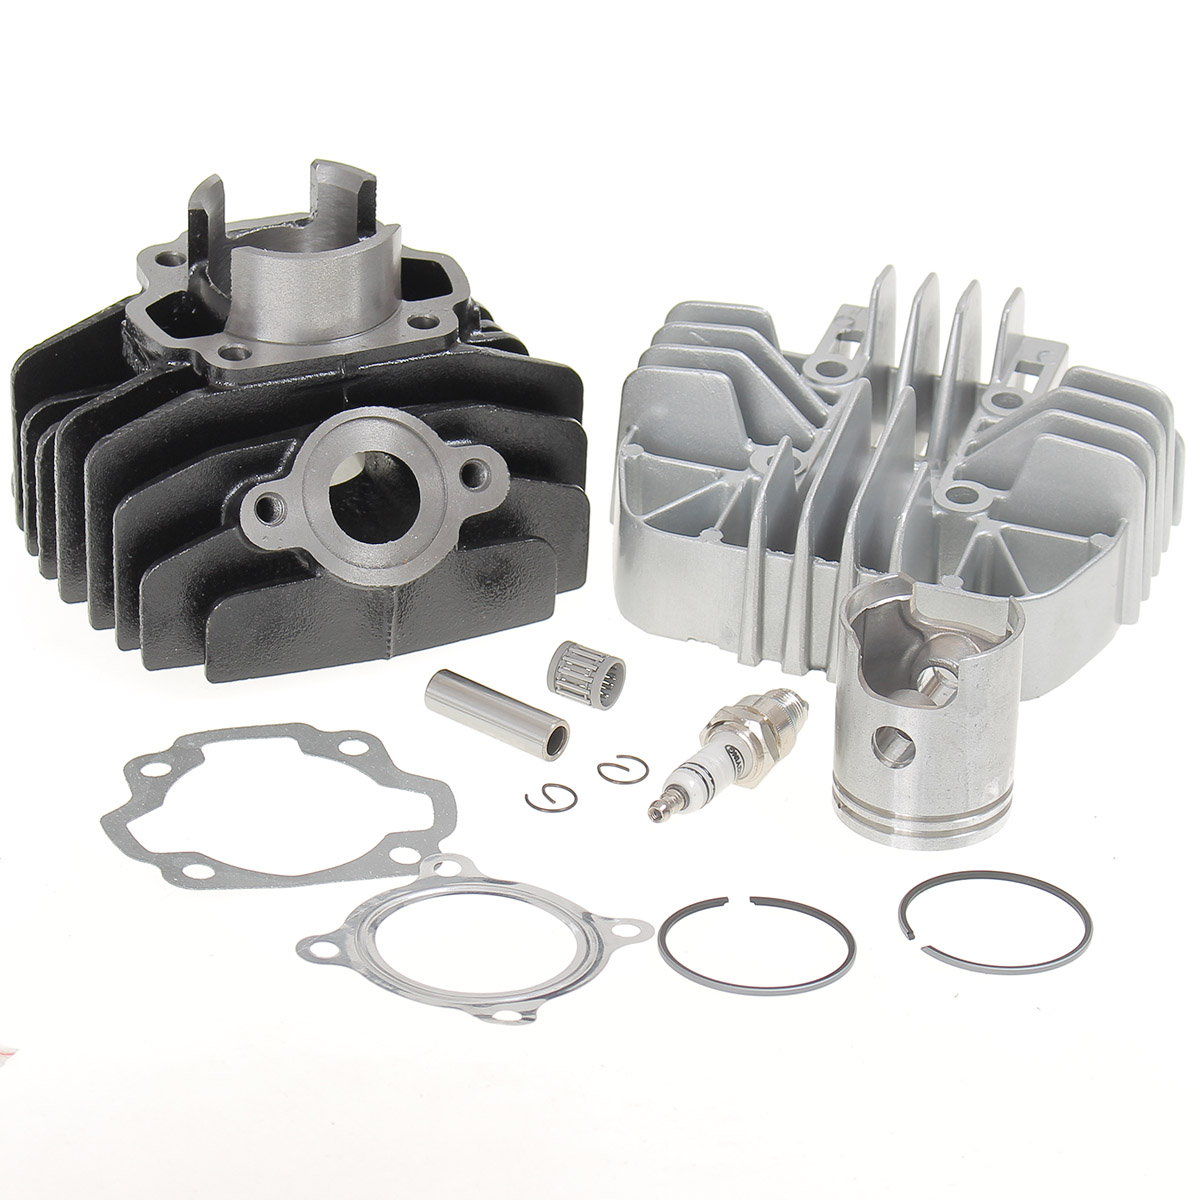 Cylinder Piston Gasket Top End Kit For Yamaha PW80 1983-2006 18E-11311-00-00